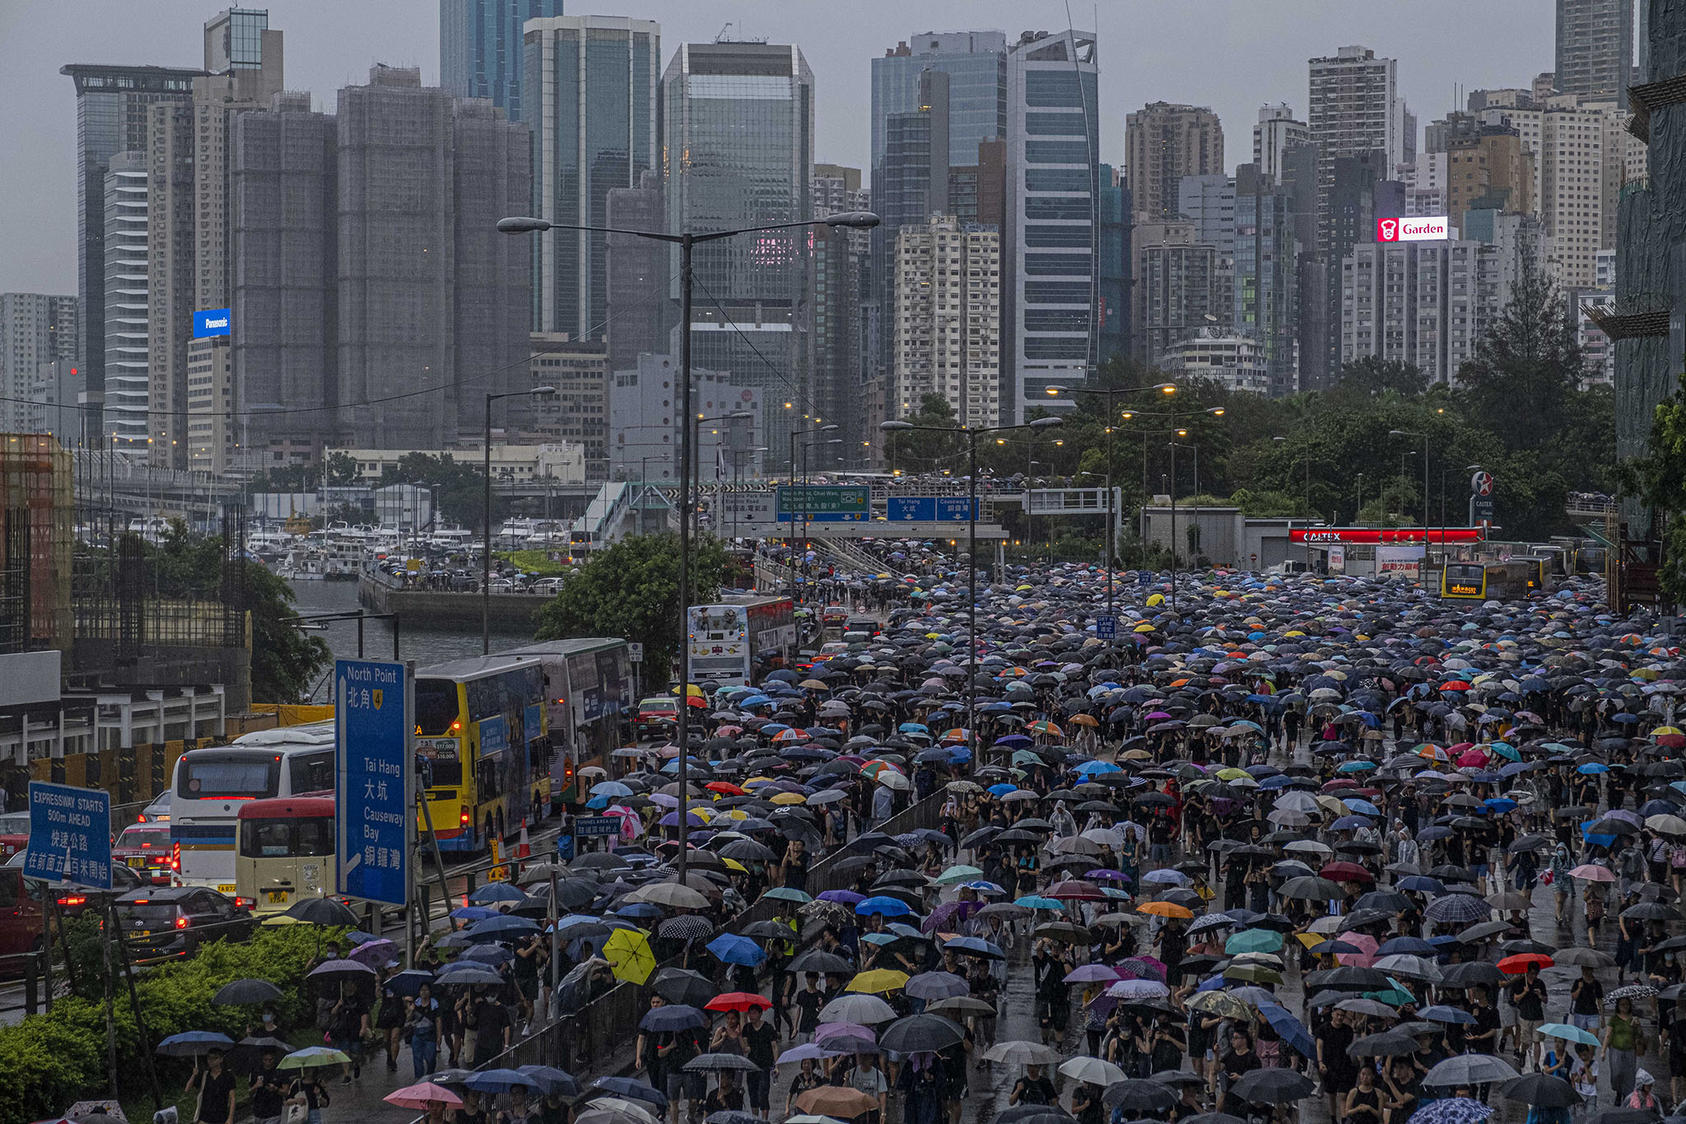 Demonstrators fill a multilane road during a march in Hong Kong on Sunday, Aug. 18, 2019. (Lam Yik Fei/The New York Times)